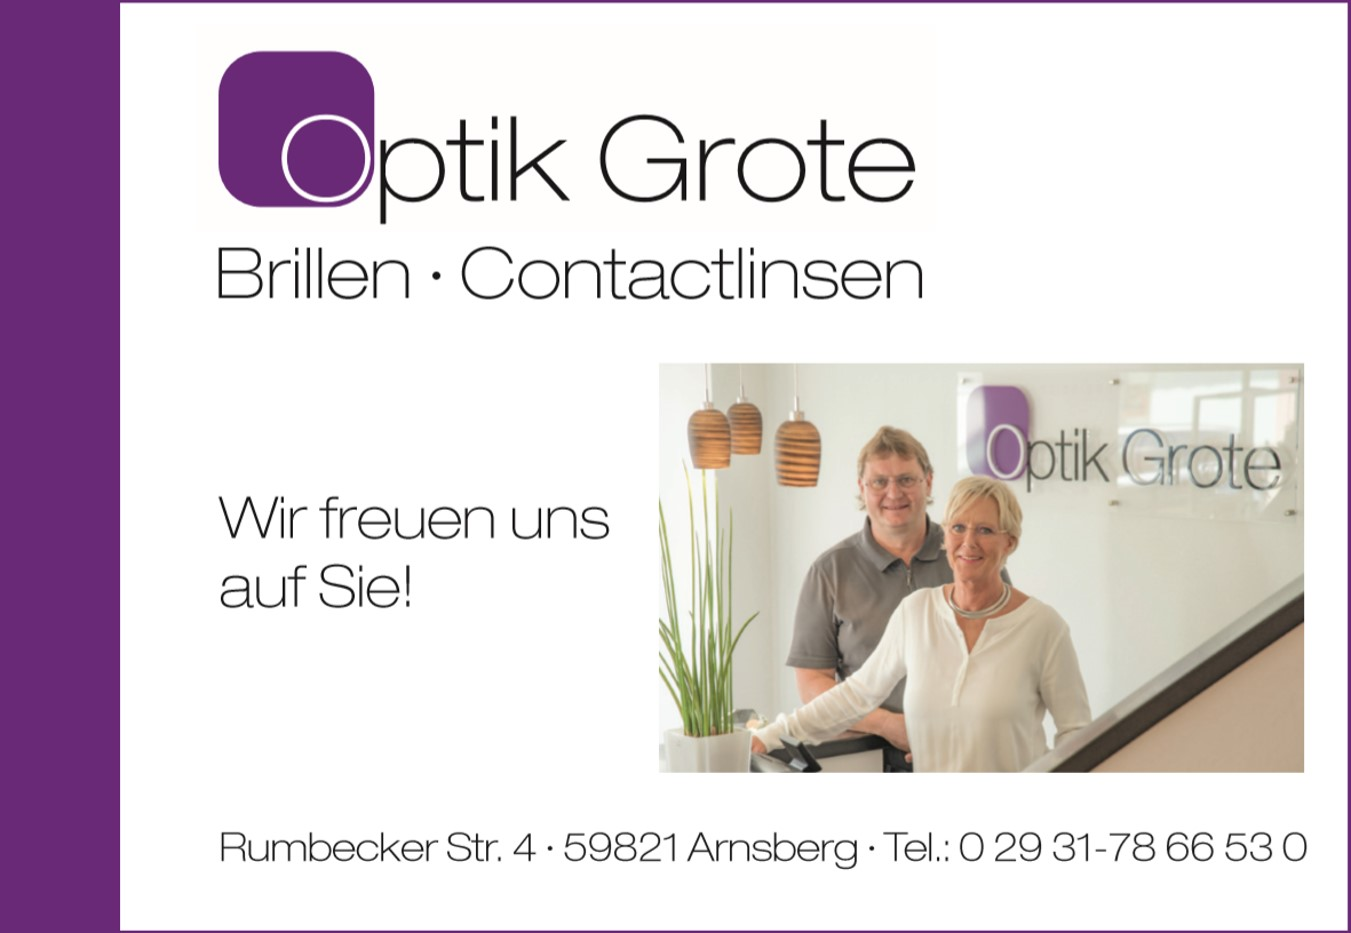 Optik Grothe